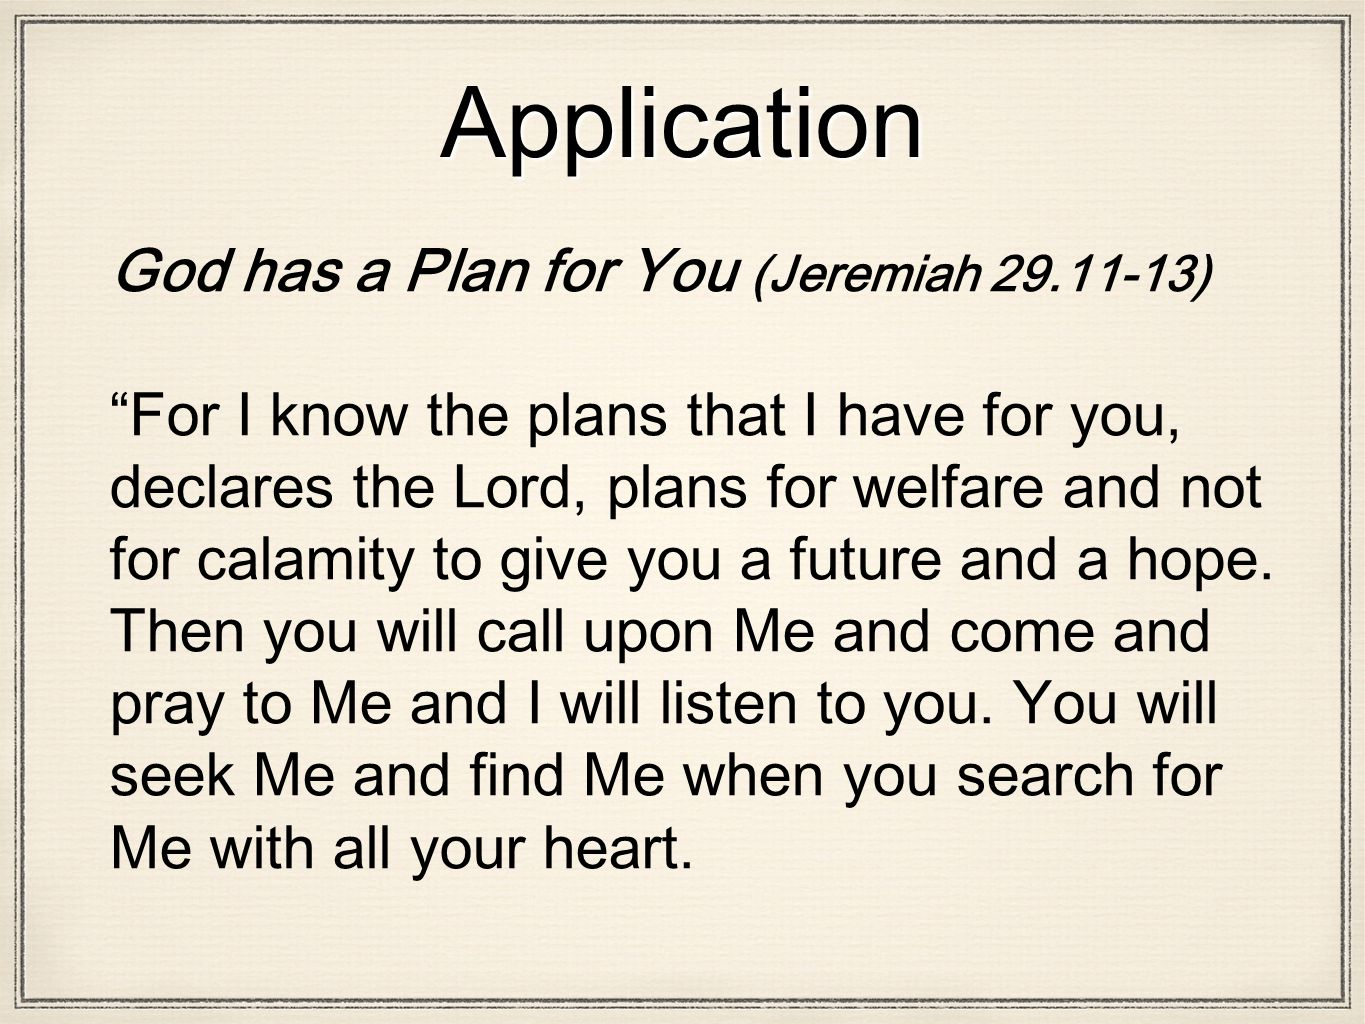 Application God has a Plan for You (Jeremiah 29.11-13) For I know the plans that I have for you, declares the Lord, plans for welfare and not for calamity to give you a future and a hope.